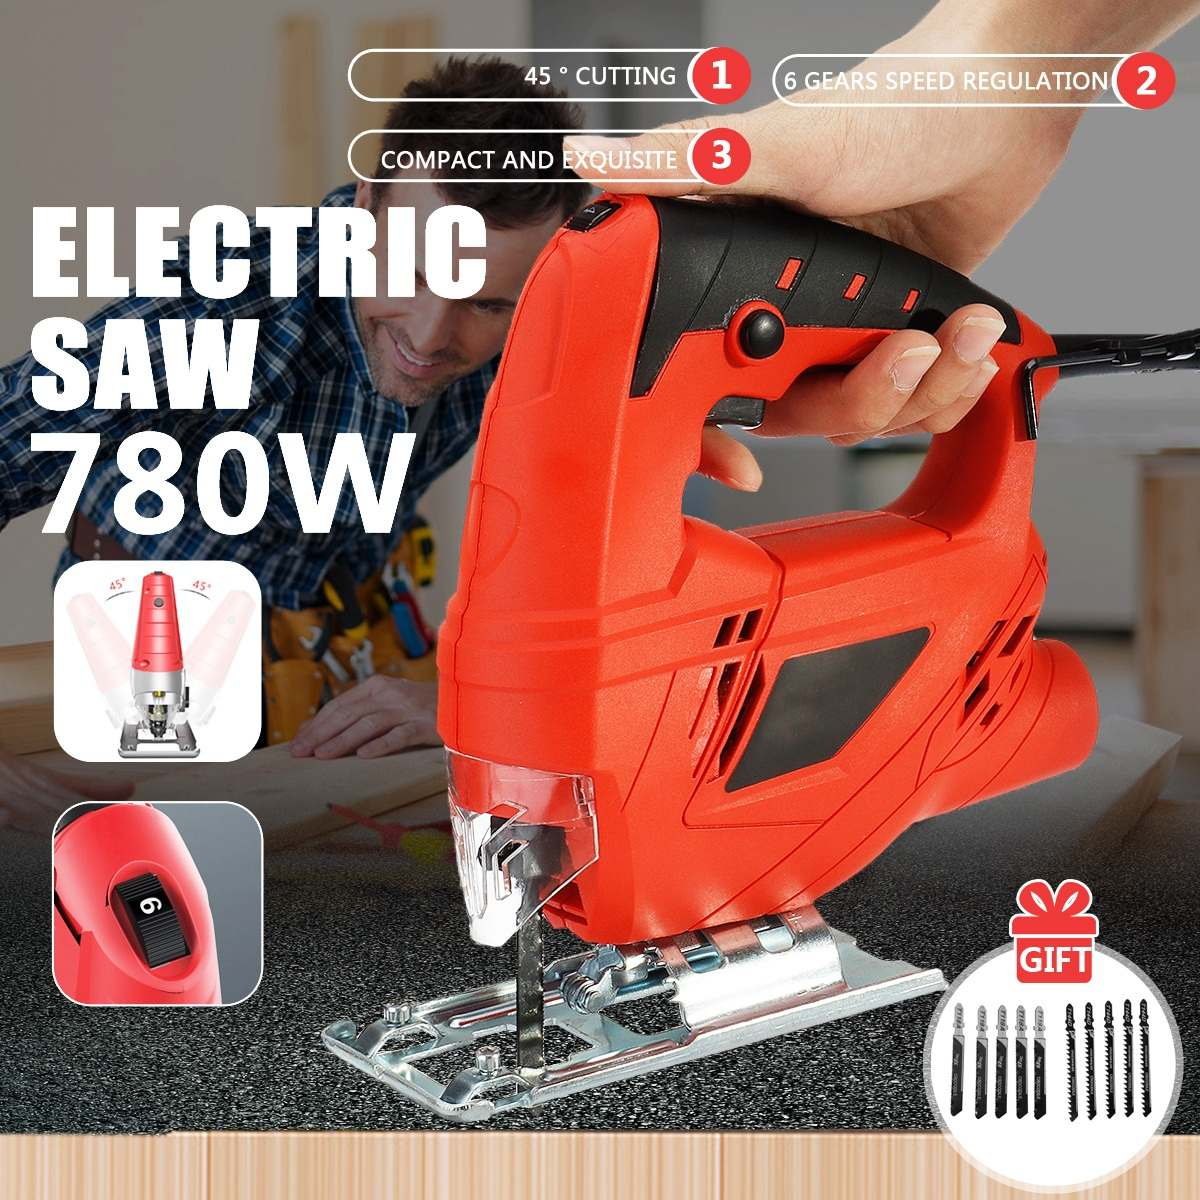 780W Jig Saw 6 Variable Speed Electric Saw With 10 Pieces Blades Multifunctional Jigsaw Electric Saws for Woodworking Power Tool